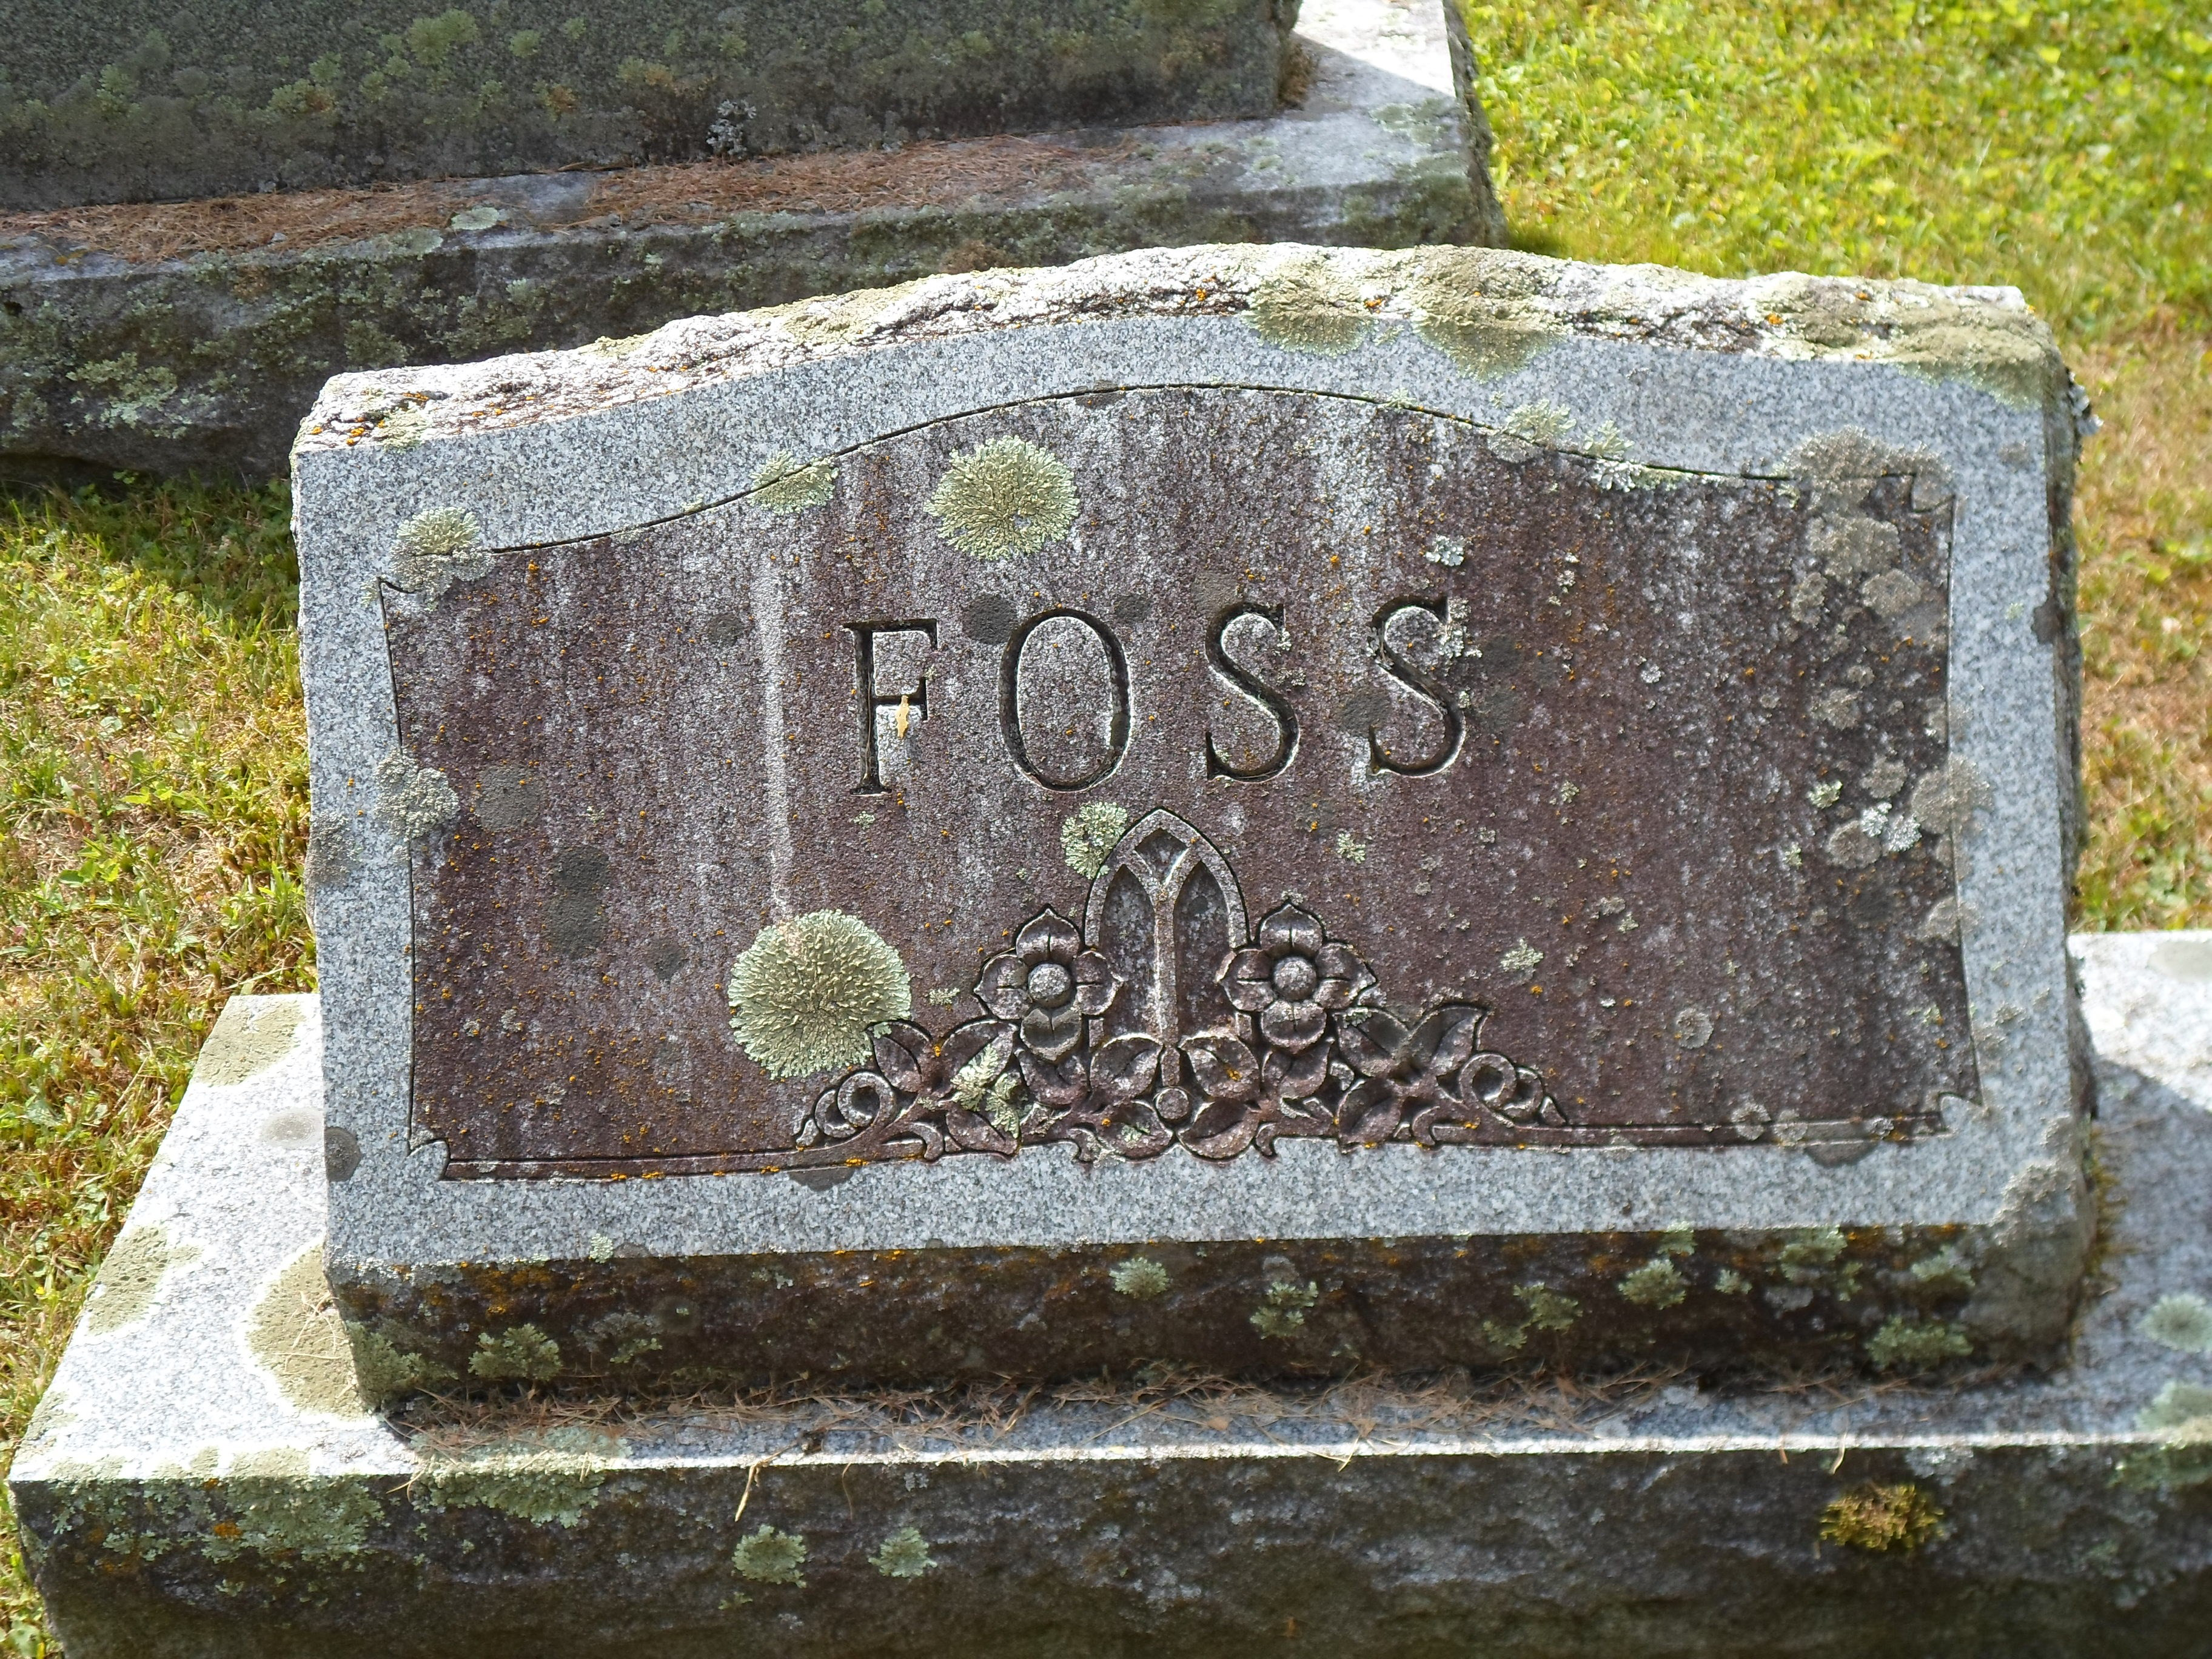 William J Foss